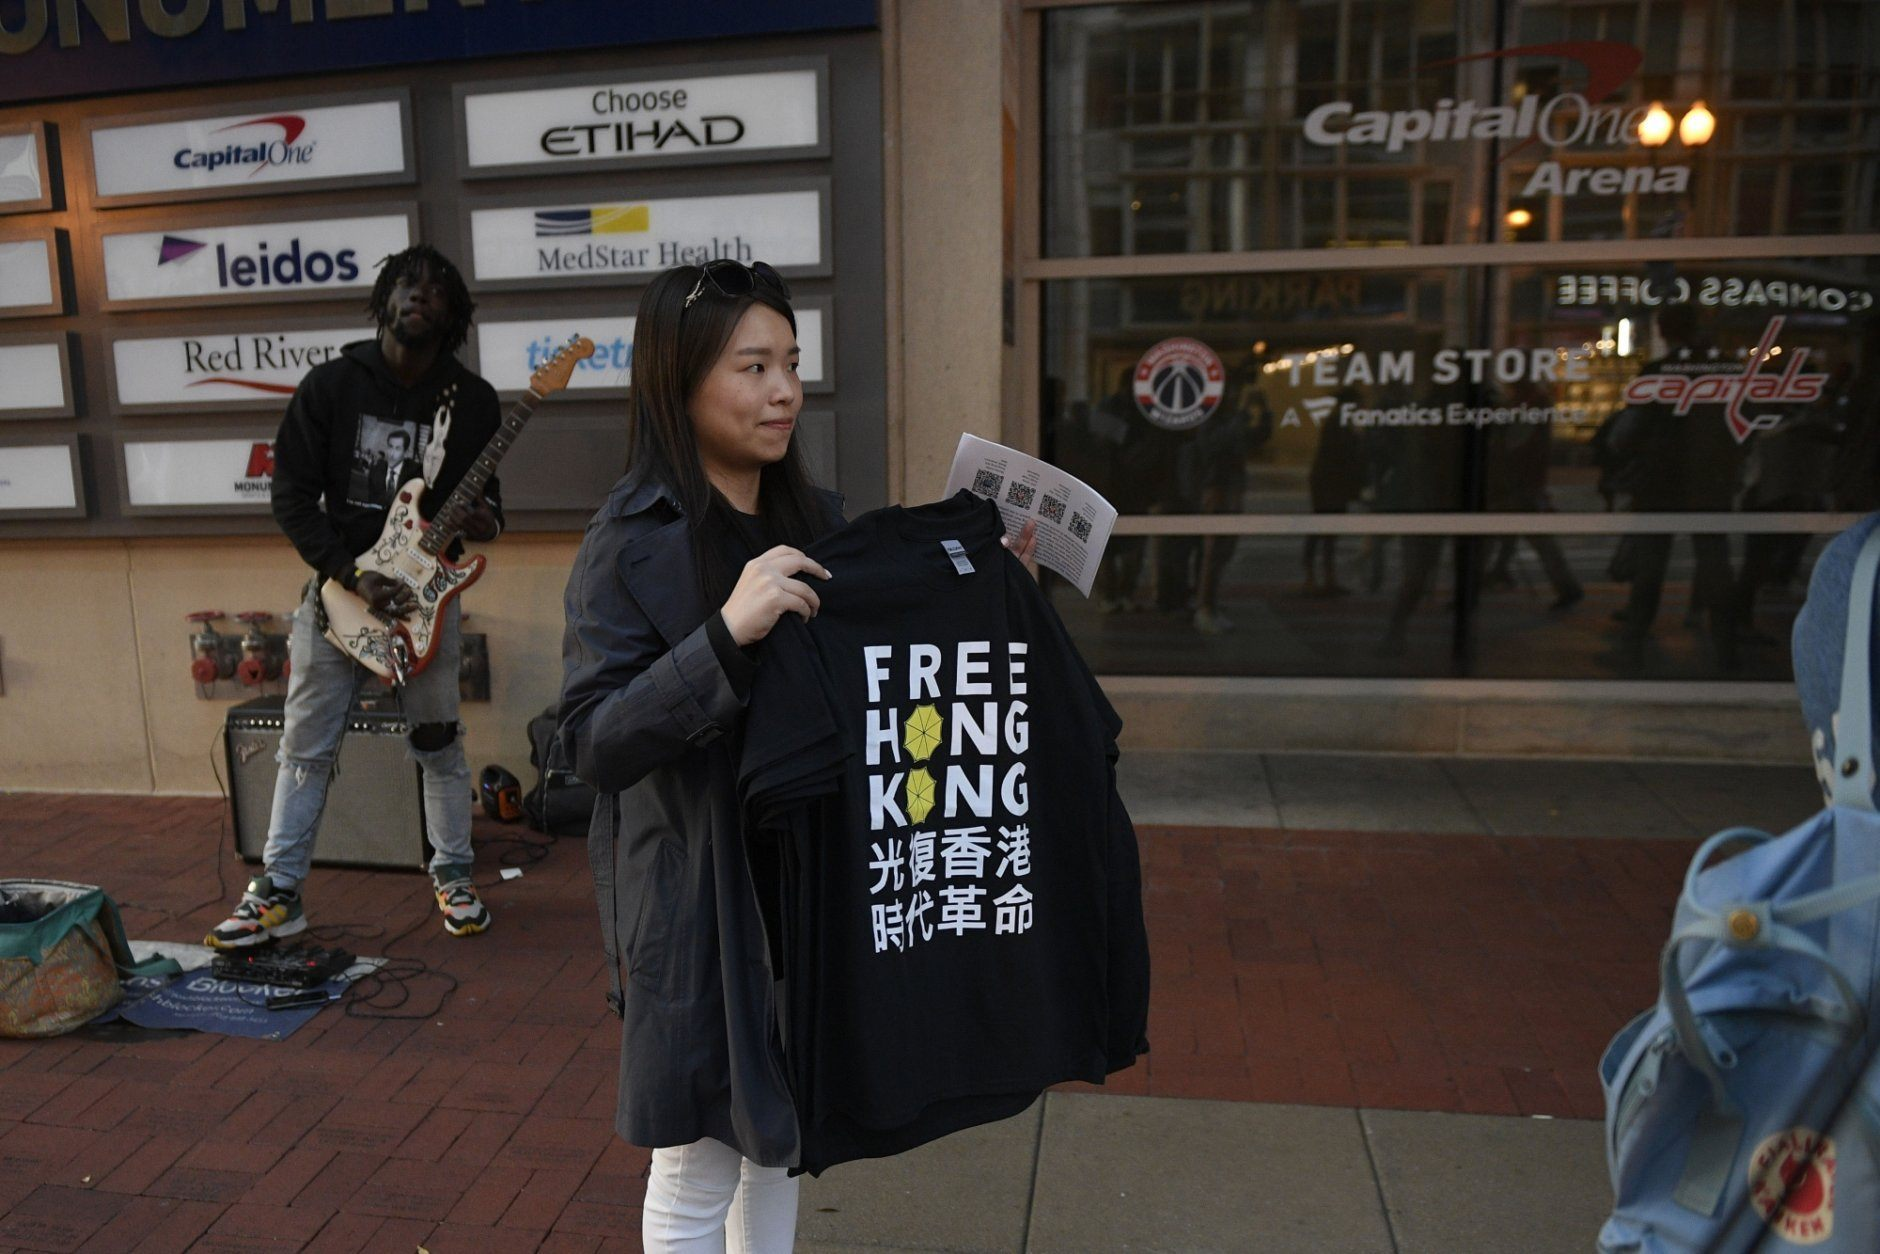 An activist stands outside Capital One Arena before an NBA exhibition basketball game between the Washington Wizards and the Guangzhou Loong-Lions, Wednesday, Oct. 9, 2019, in Washington. (AP Photo/Nick Wass)